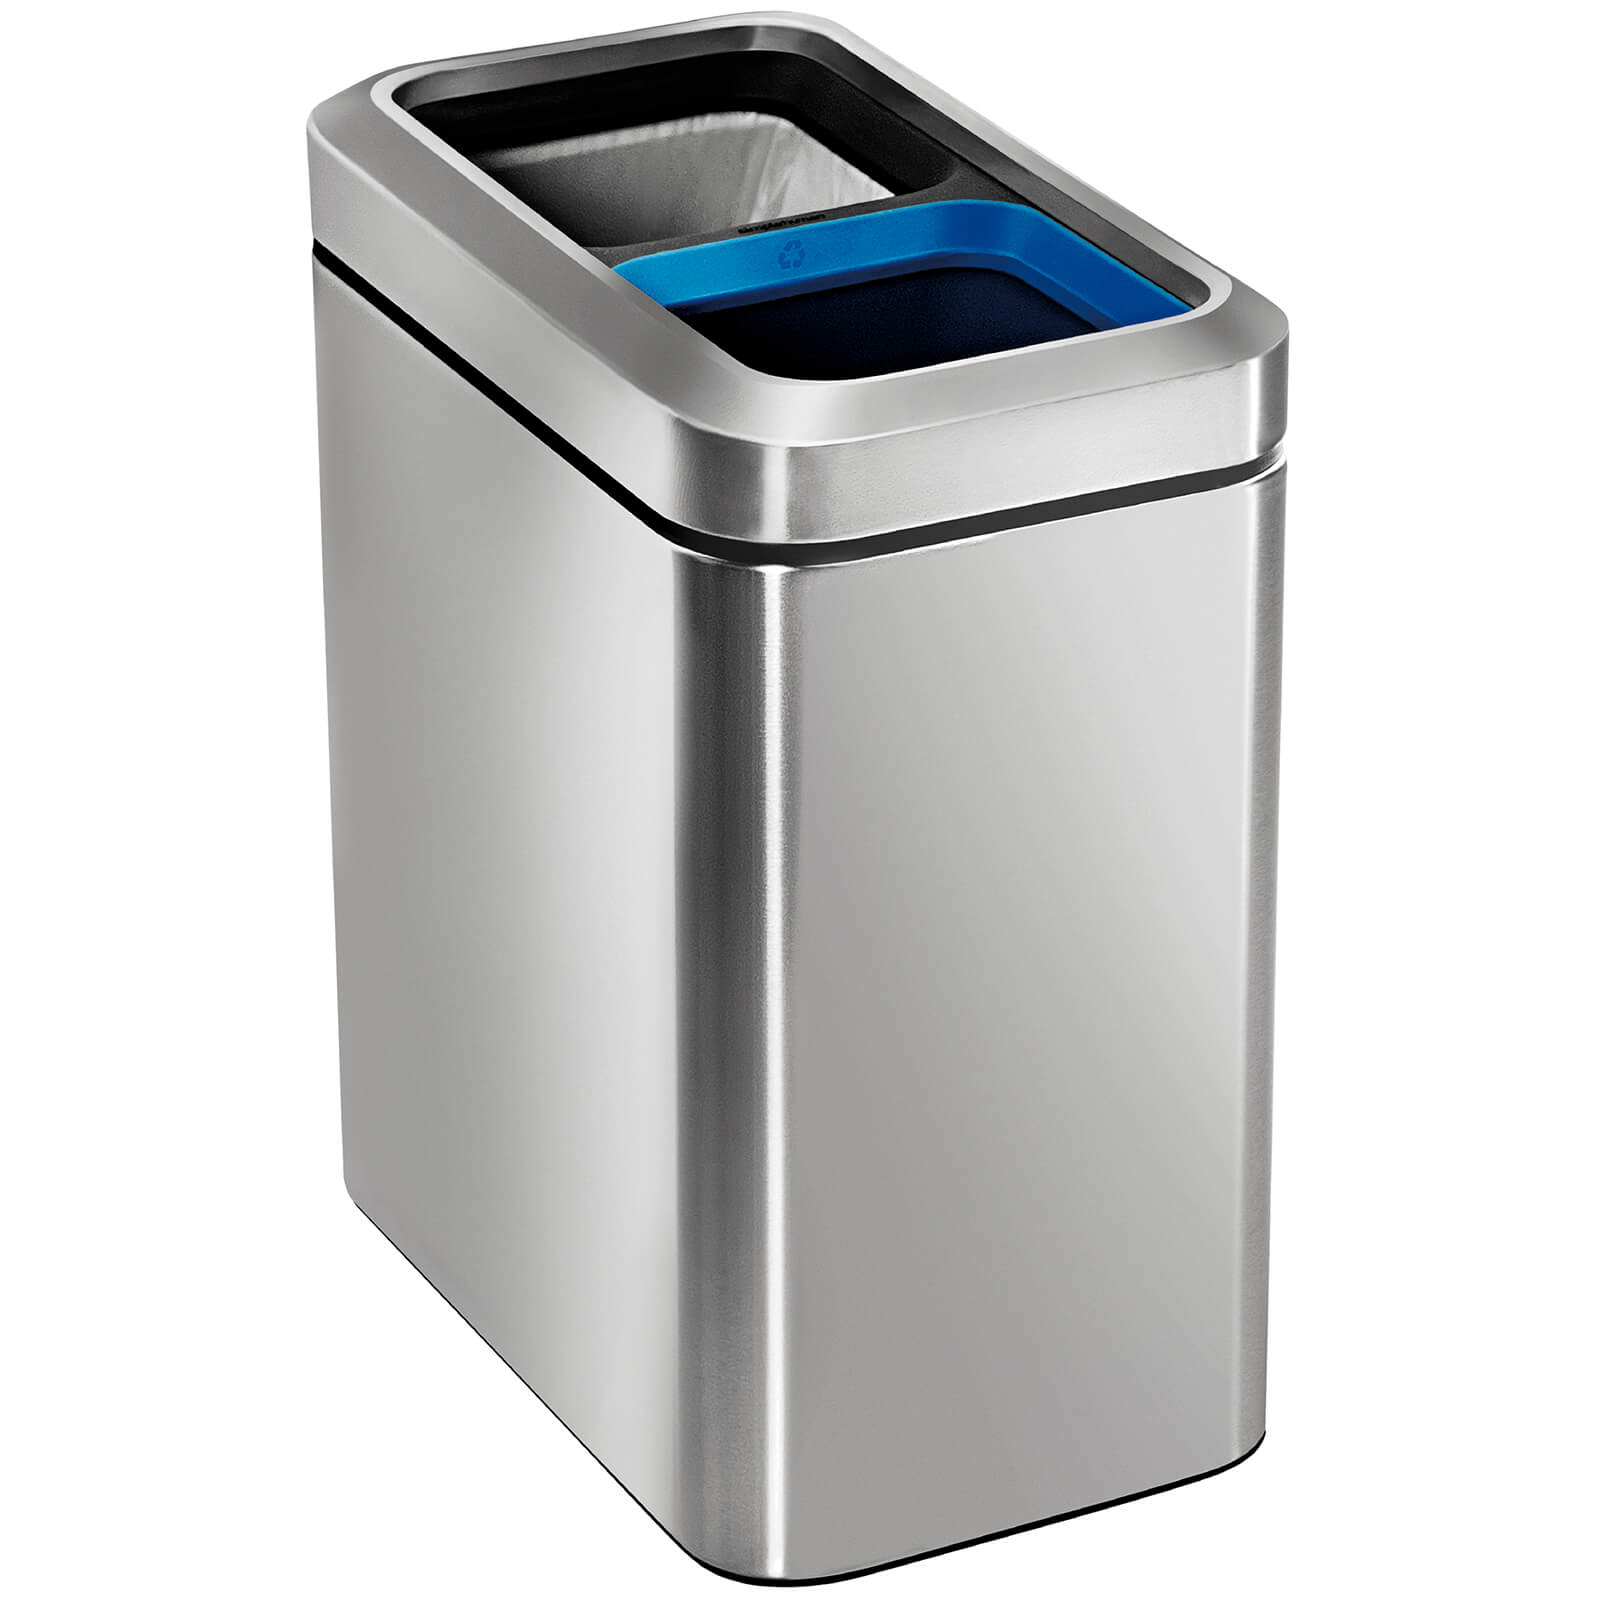 simplehuman Slim Open Recycler Bin - Brushed Steel 20L